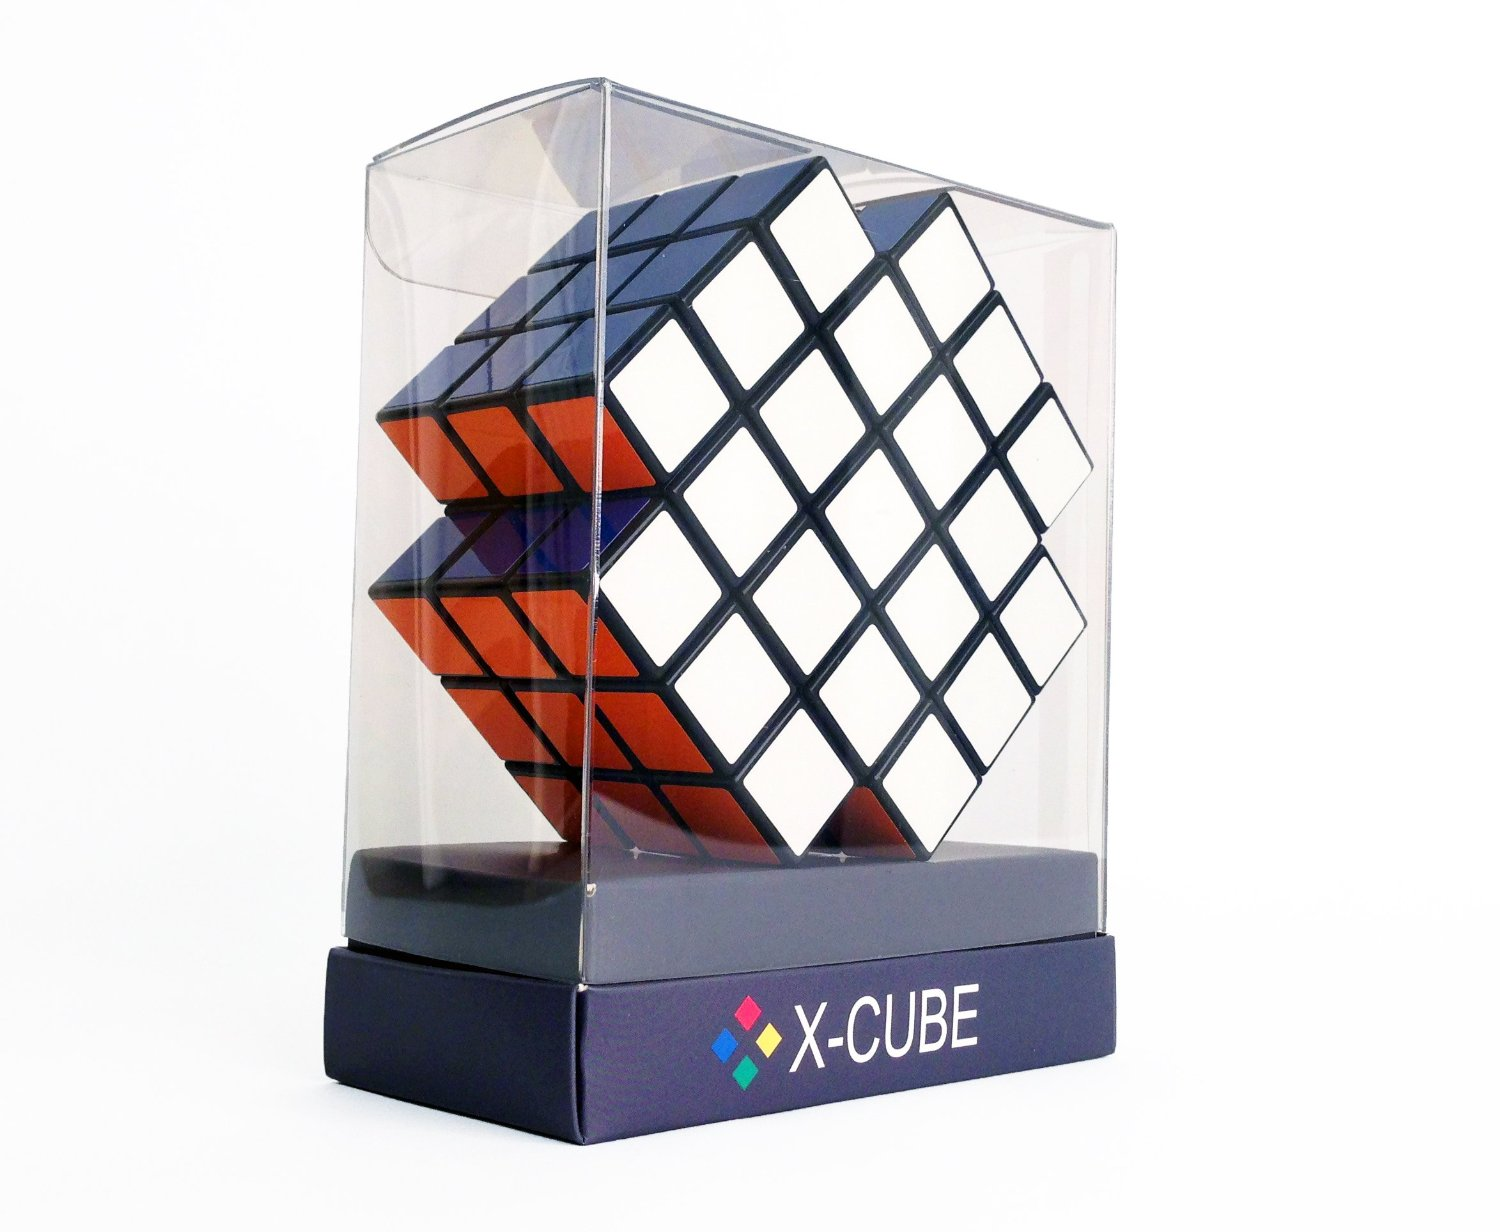 The X-Cube